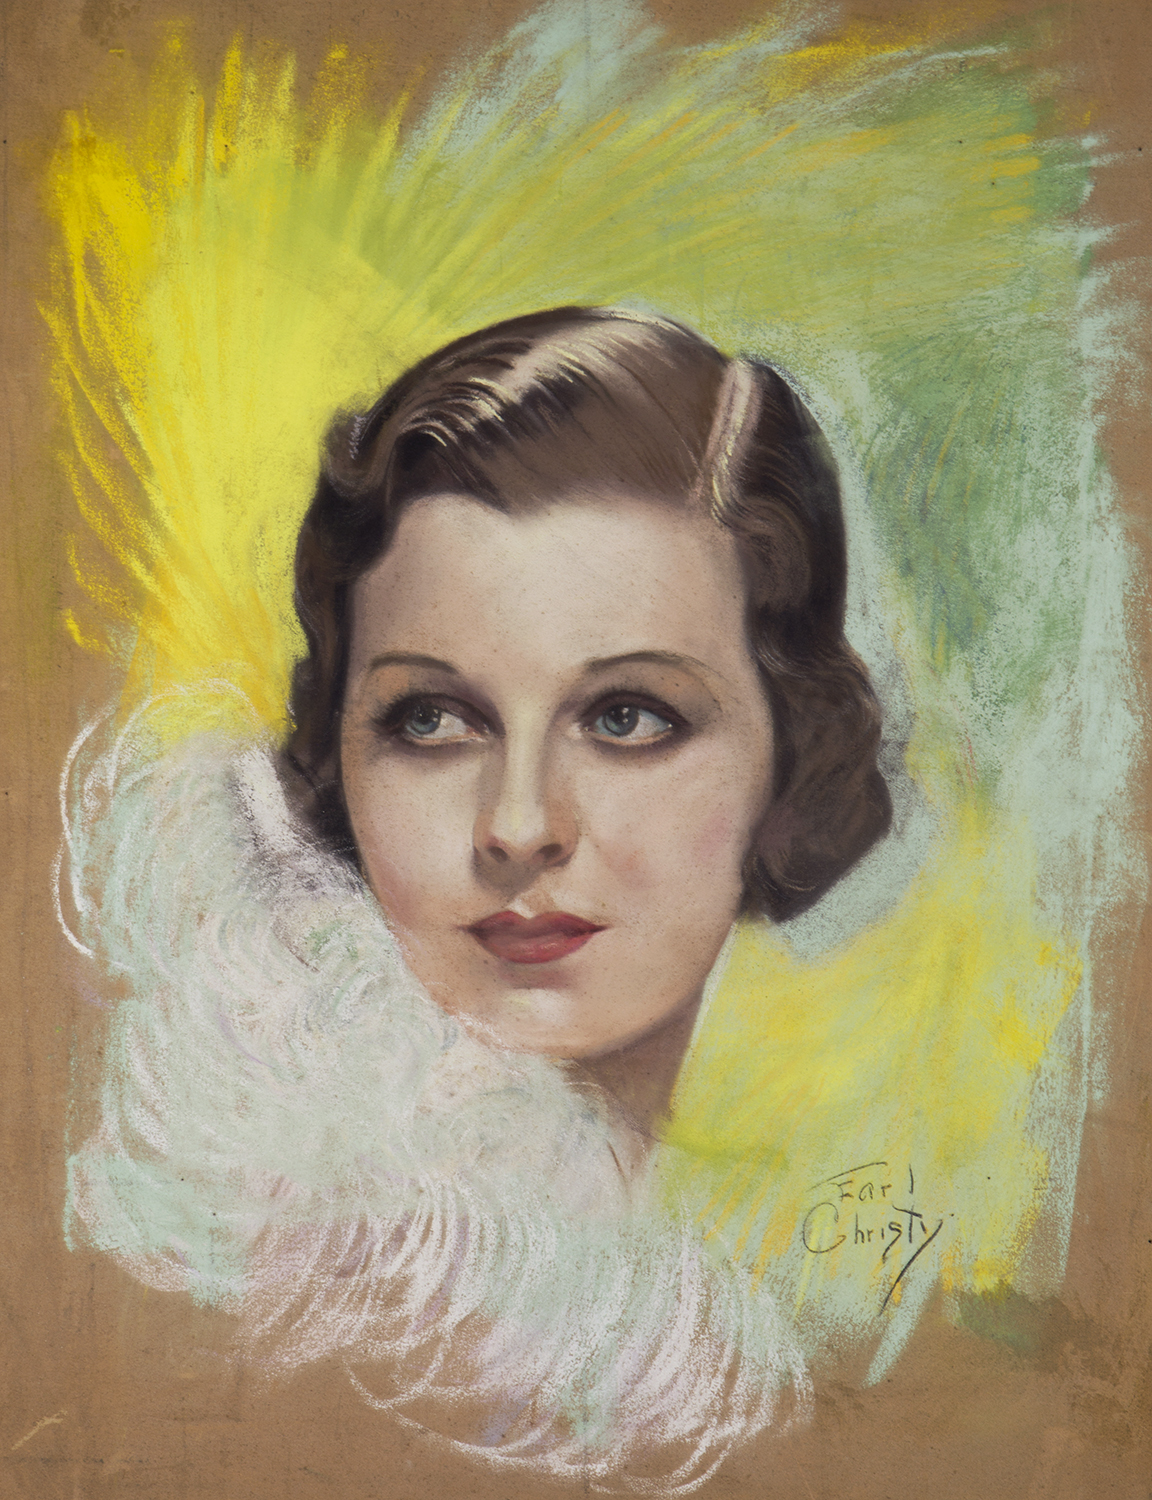 Margaret Sullavan by Earl Christy